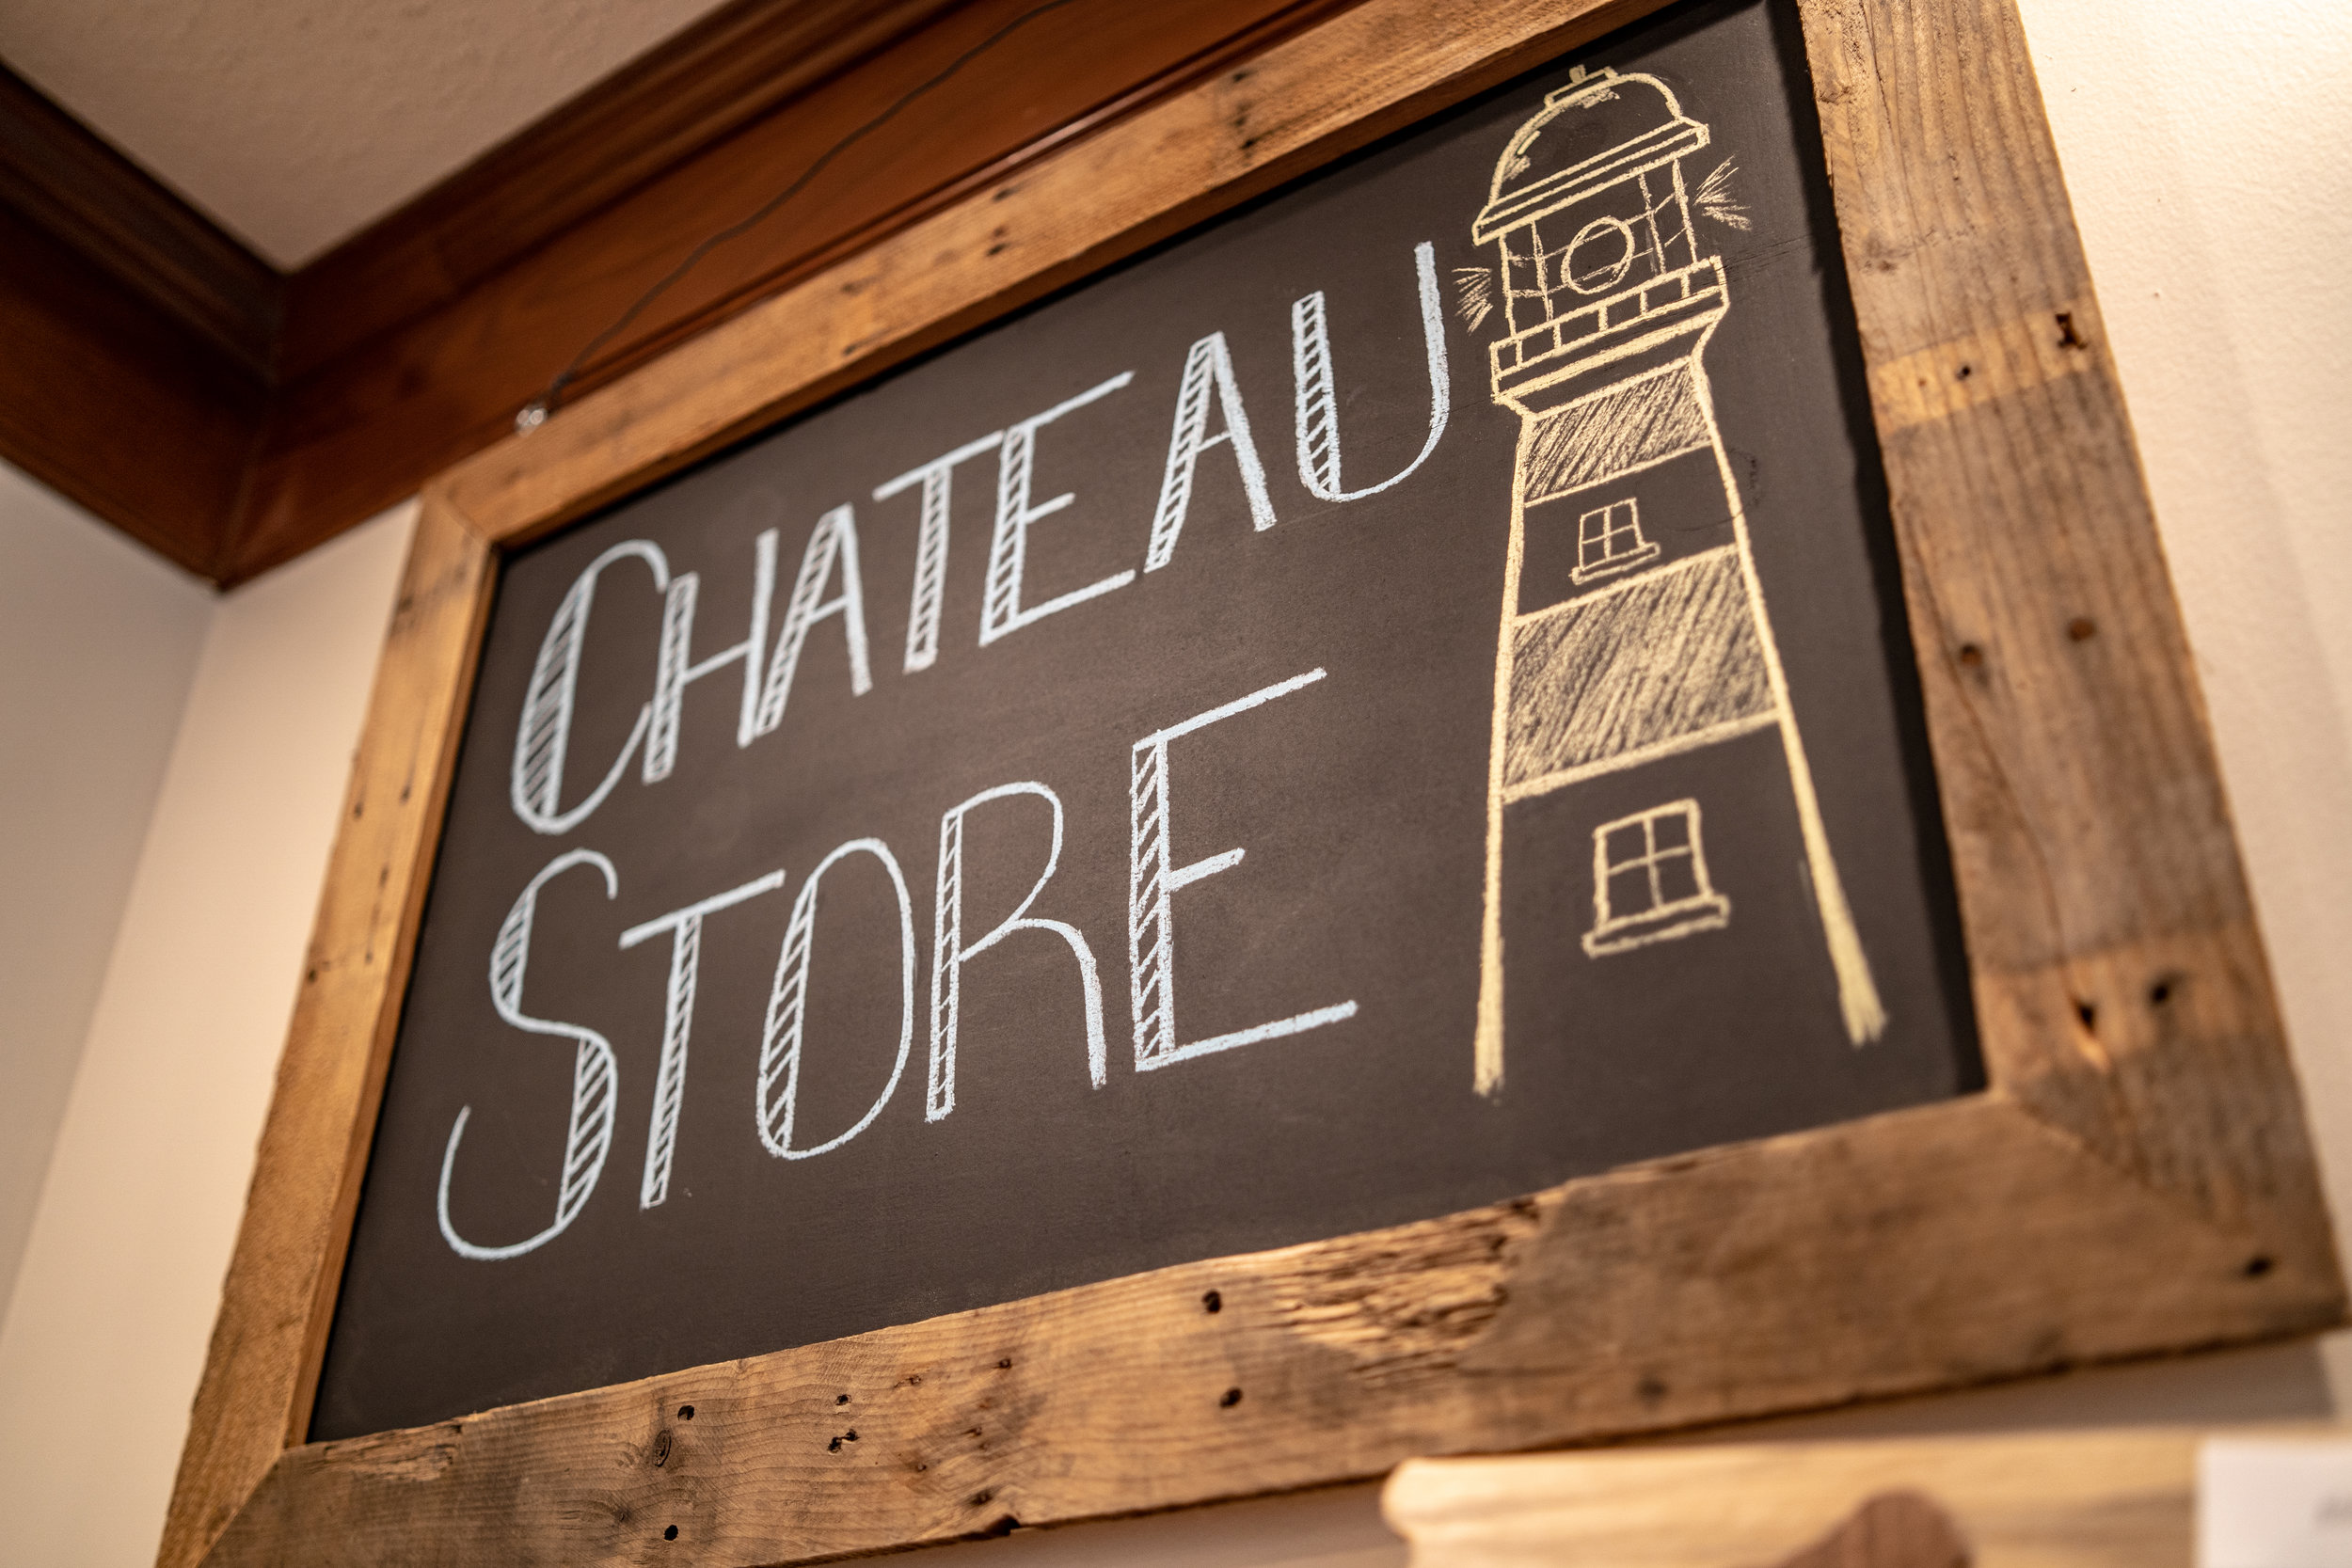 Chateau Store - Handcrafted local souvenirs located in our lobby. Ou online Store coming soon!